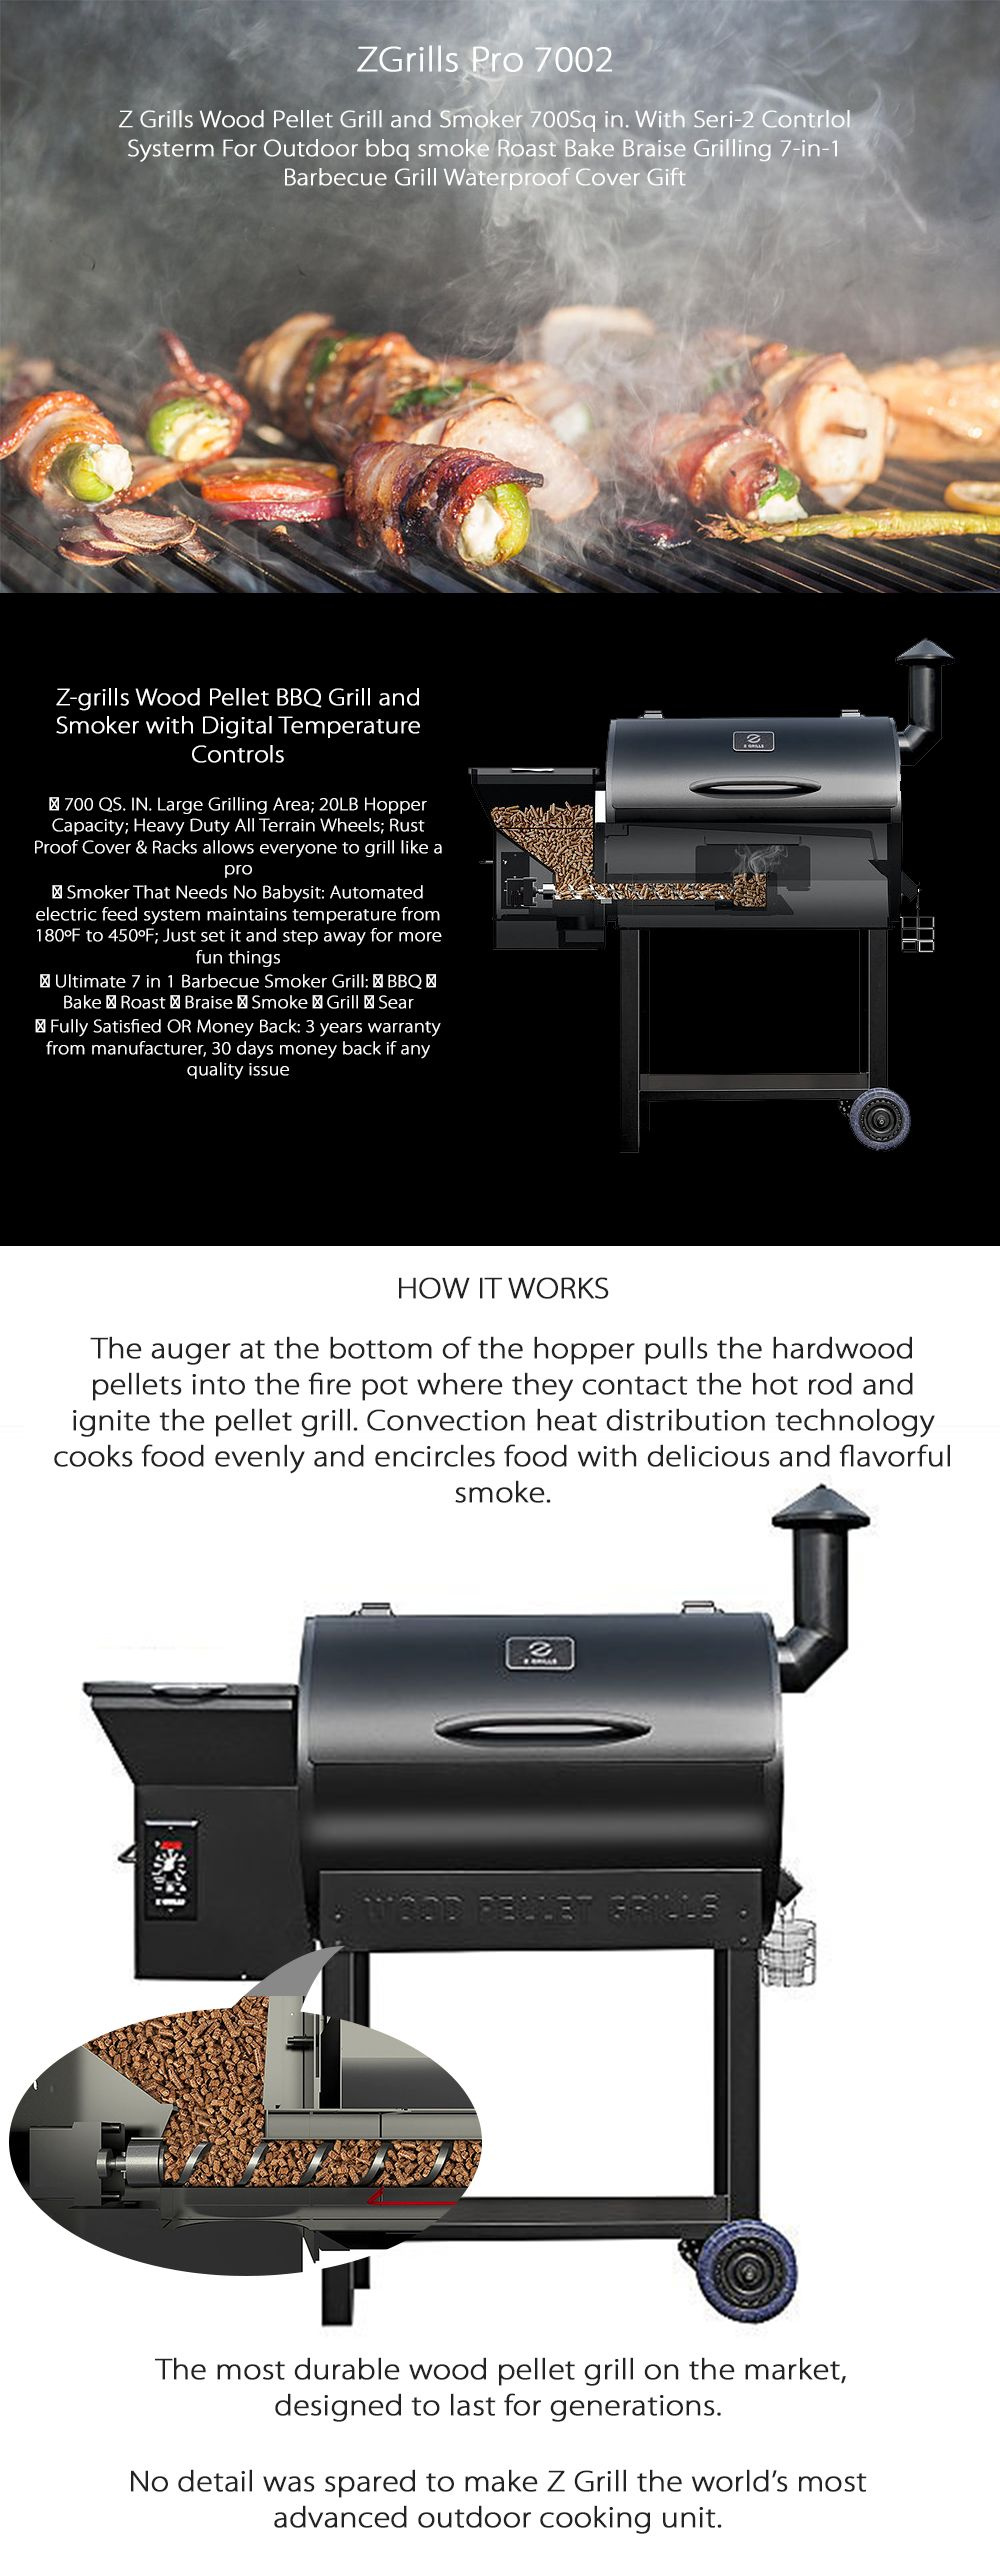 Z Grills Pro 7002 FREE GRILL COVER